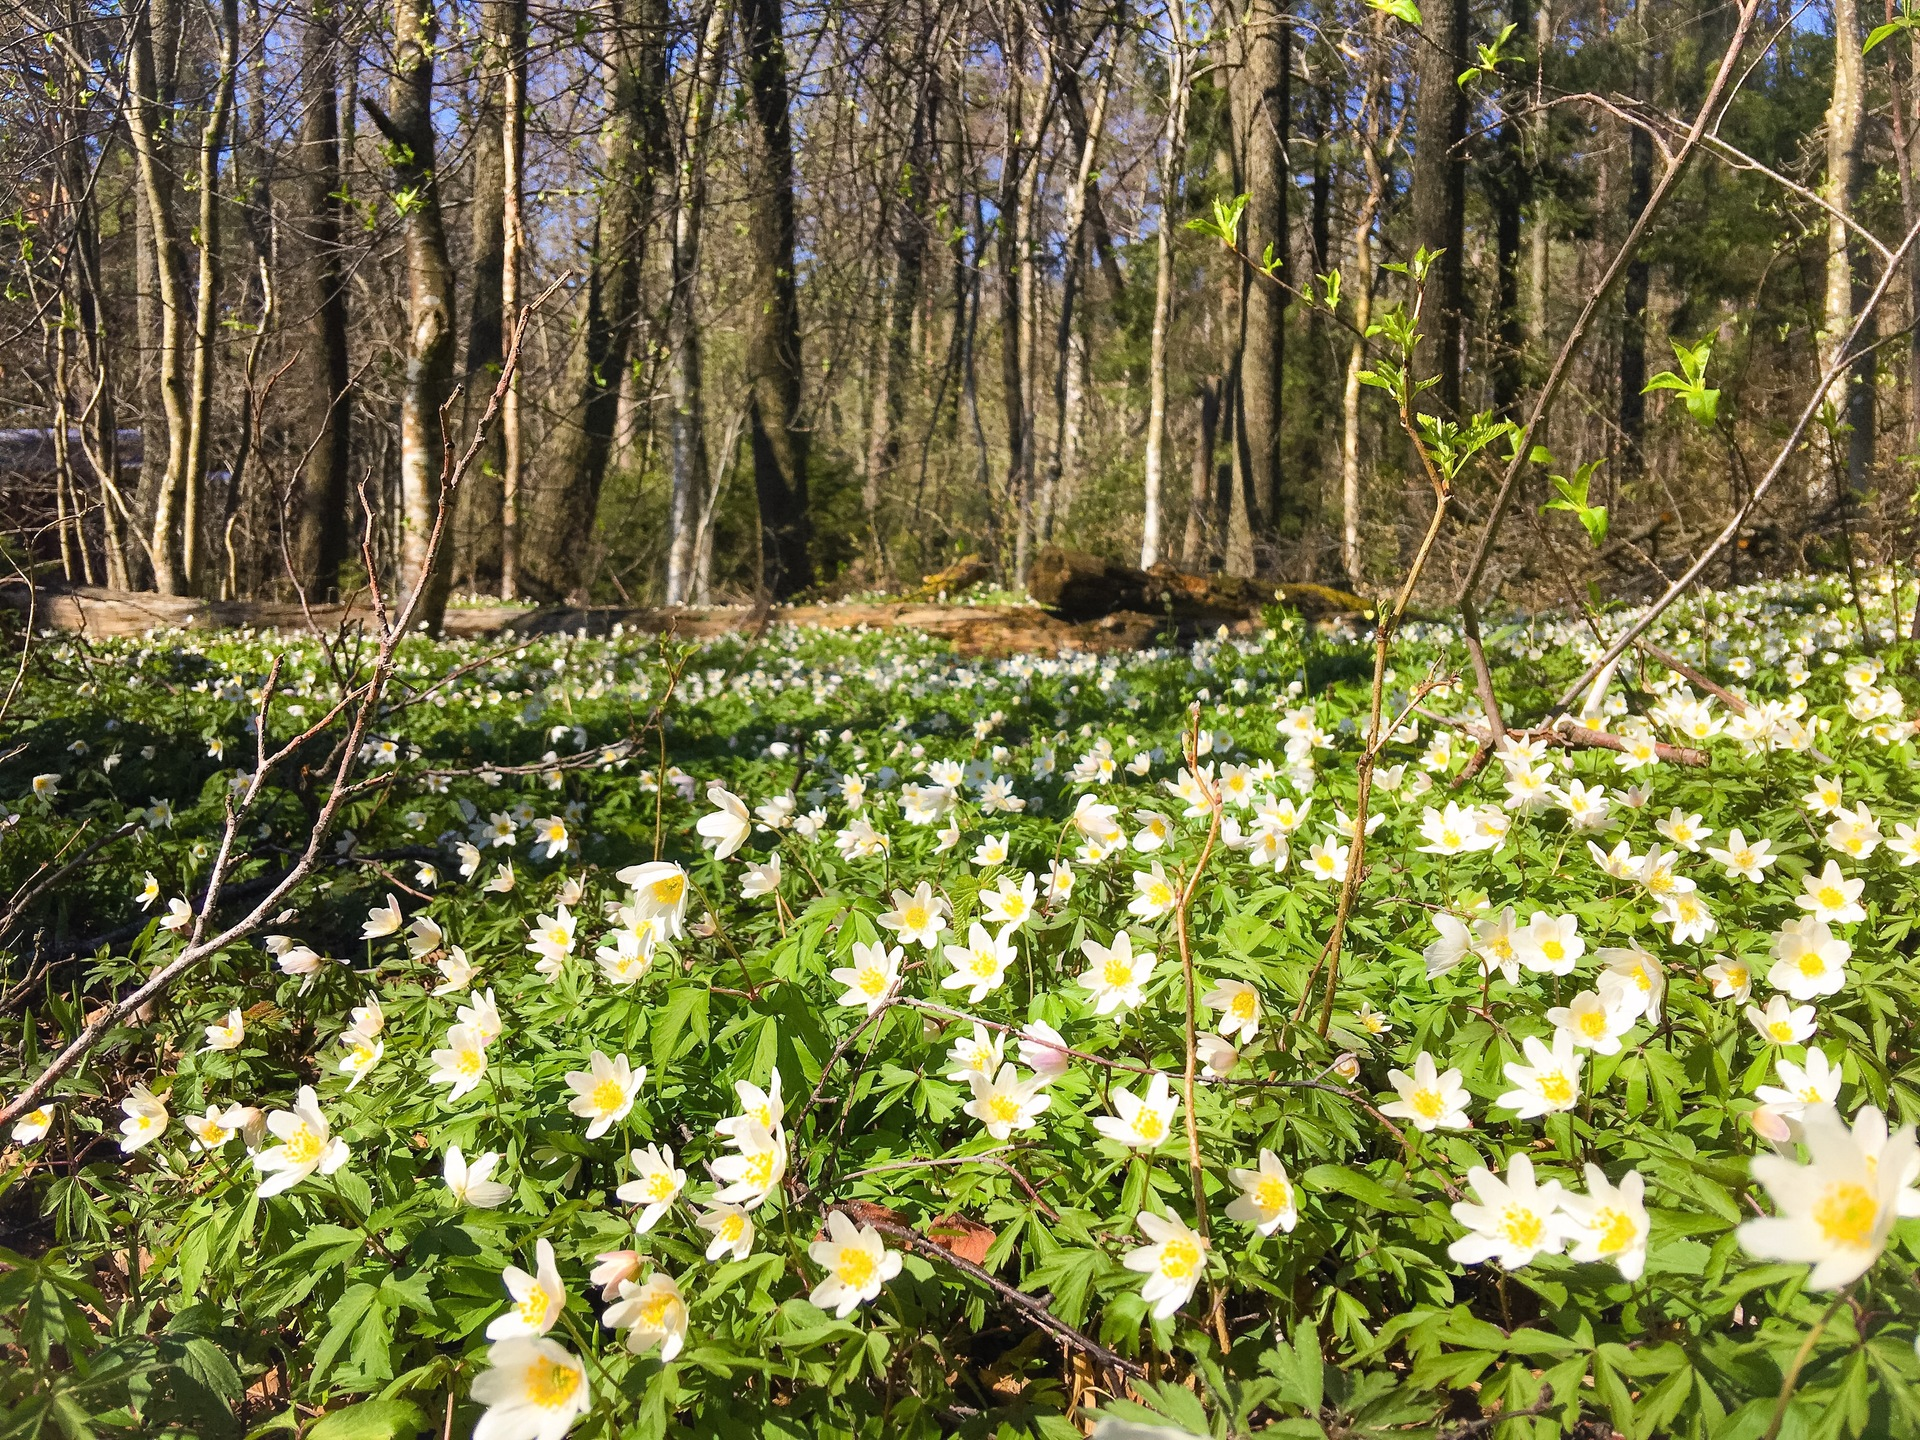 Flowers in forest   photography, color image, outdoors, day